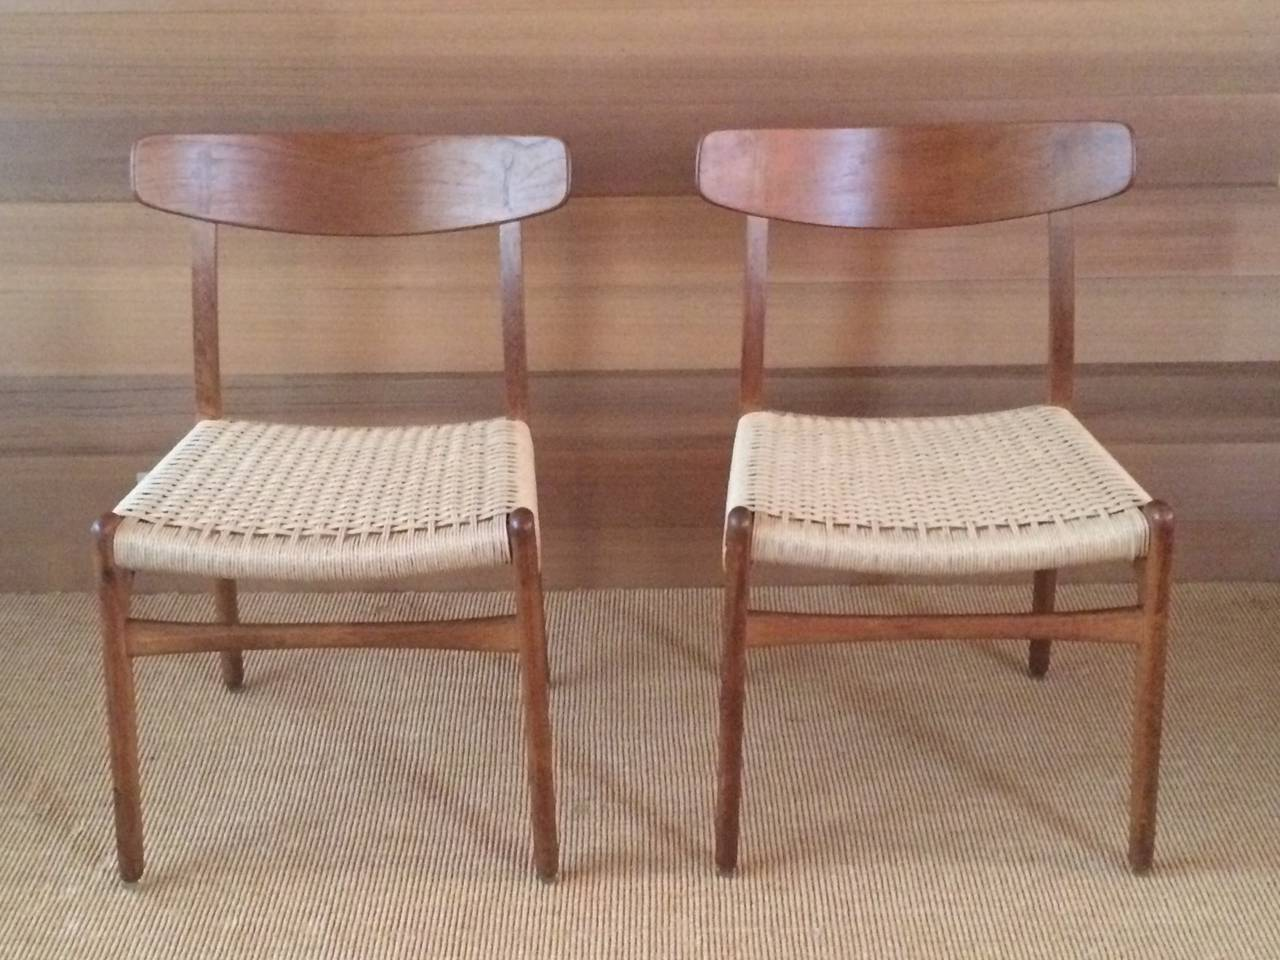 Museum Quality Hans Wegner Chairs in Oak and Paper Cord, 1950 6